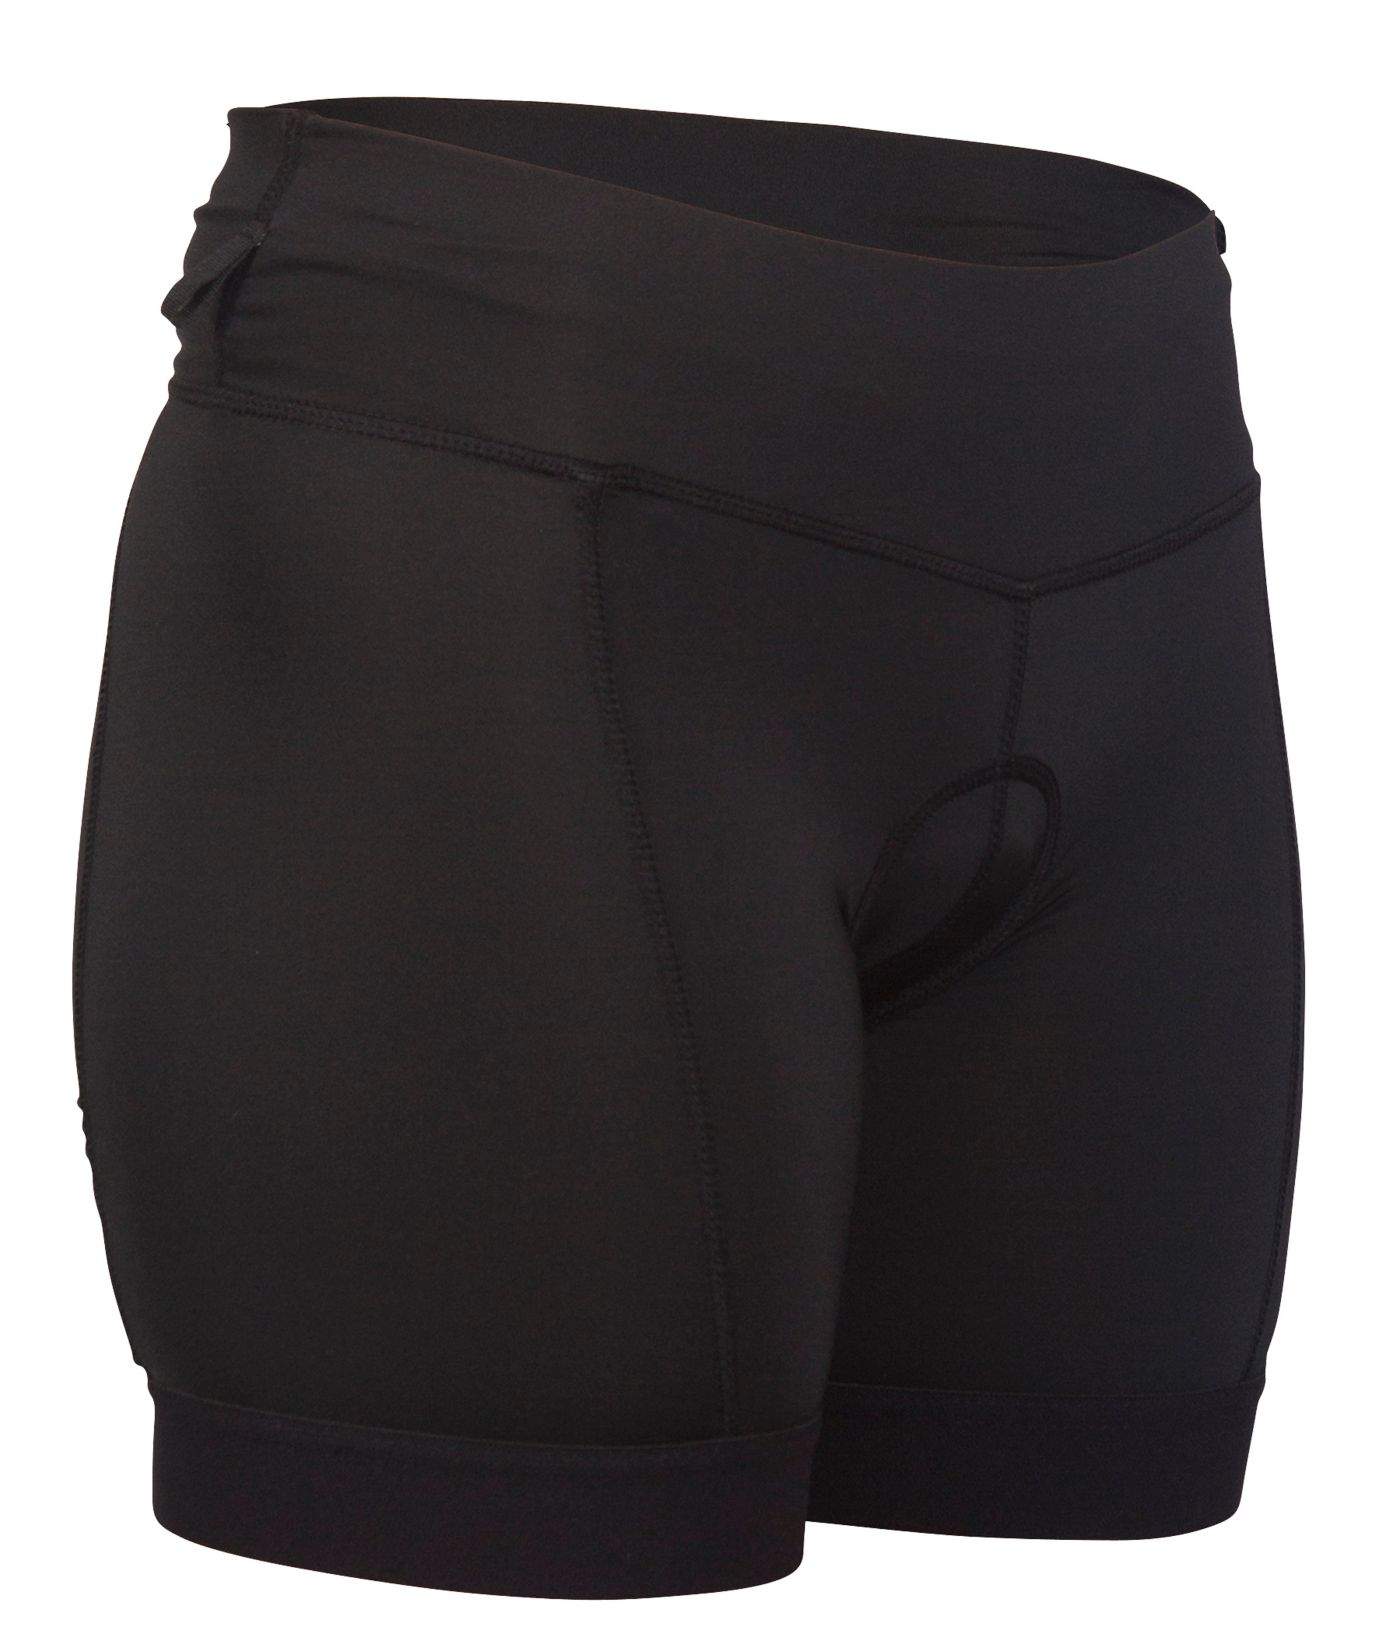 ZOIC Women's Essential Cycling Liner